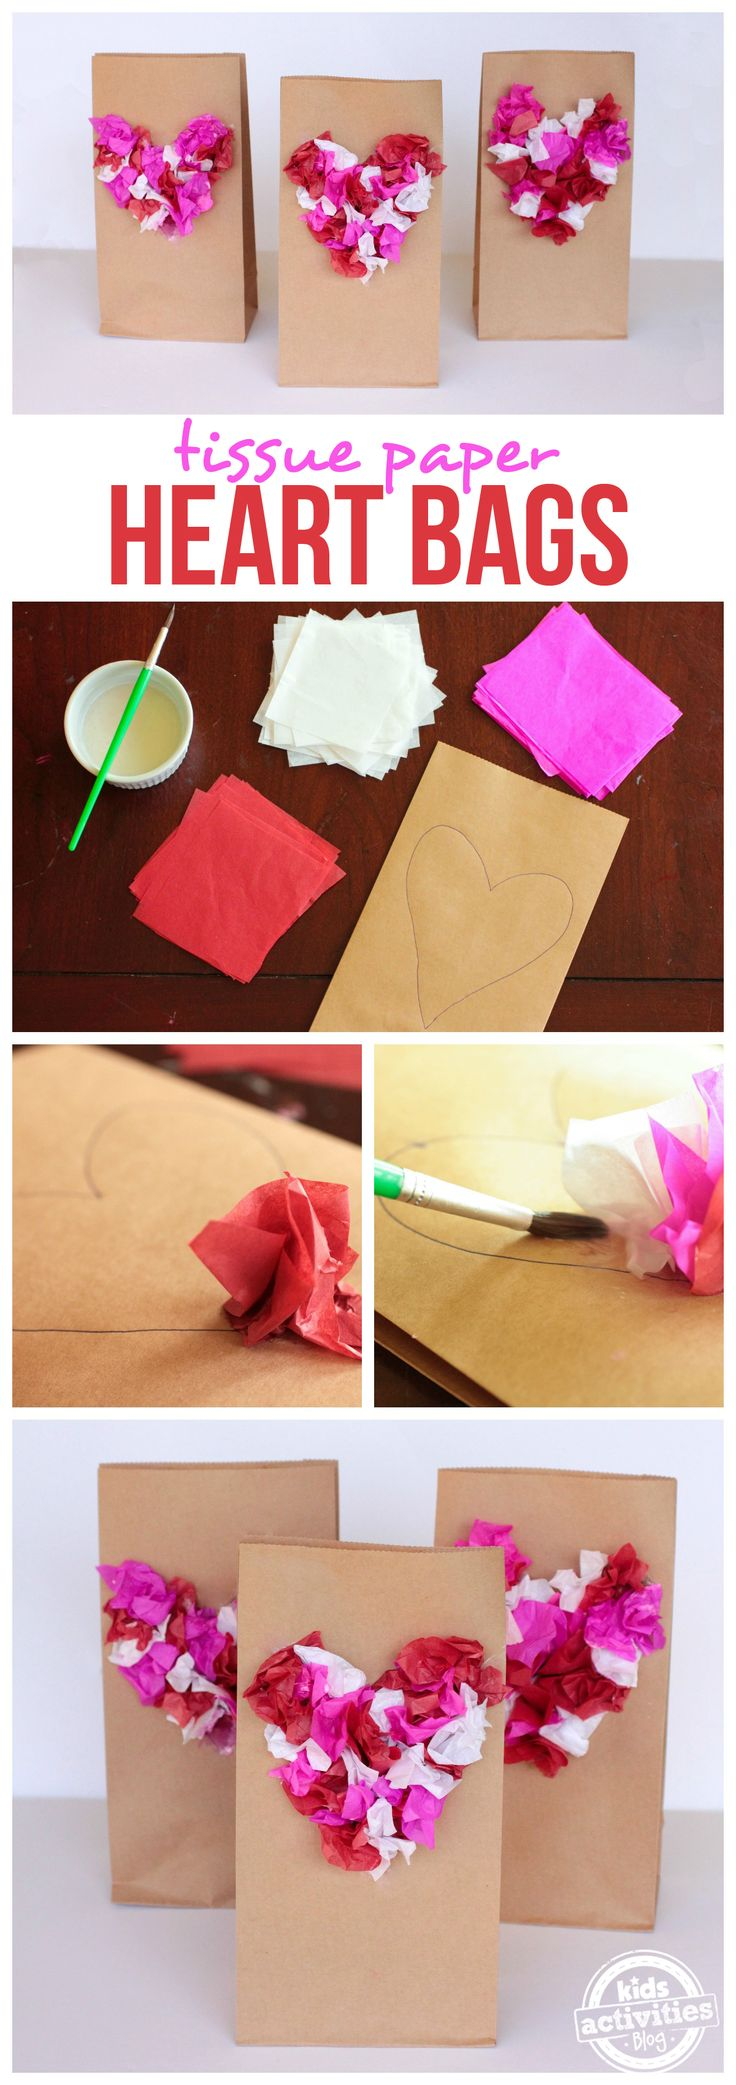 Tissue Paper Heart Bags are a simple, fun craft that is perfect for parties! It doesn't have to be Valentine's Day to enjoy a beautiful heart design. And with homemade decoupage using @imperialsugar, we bet you have everything you need already!